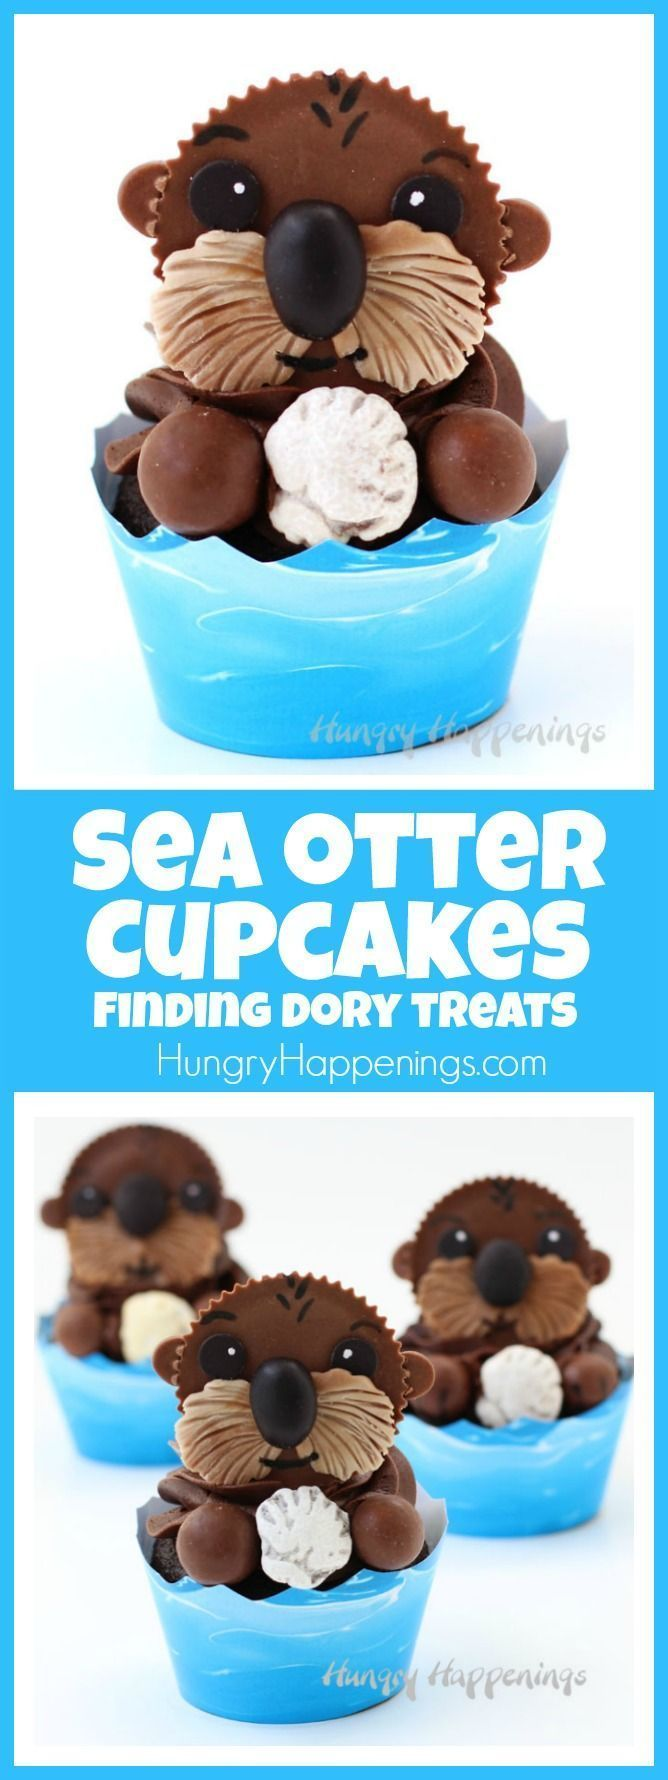 Your kids will squeal with delight when you serve them these adorably cute Sea Otter Cupcakes at your Finding Dory party.